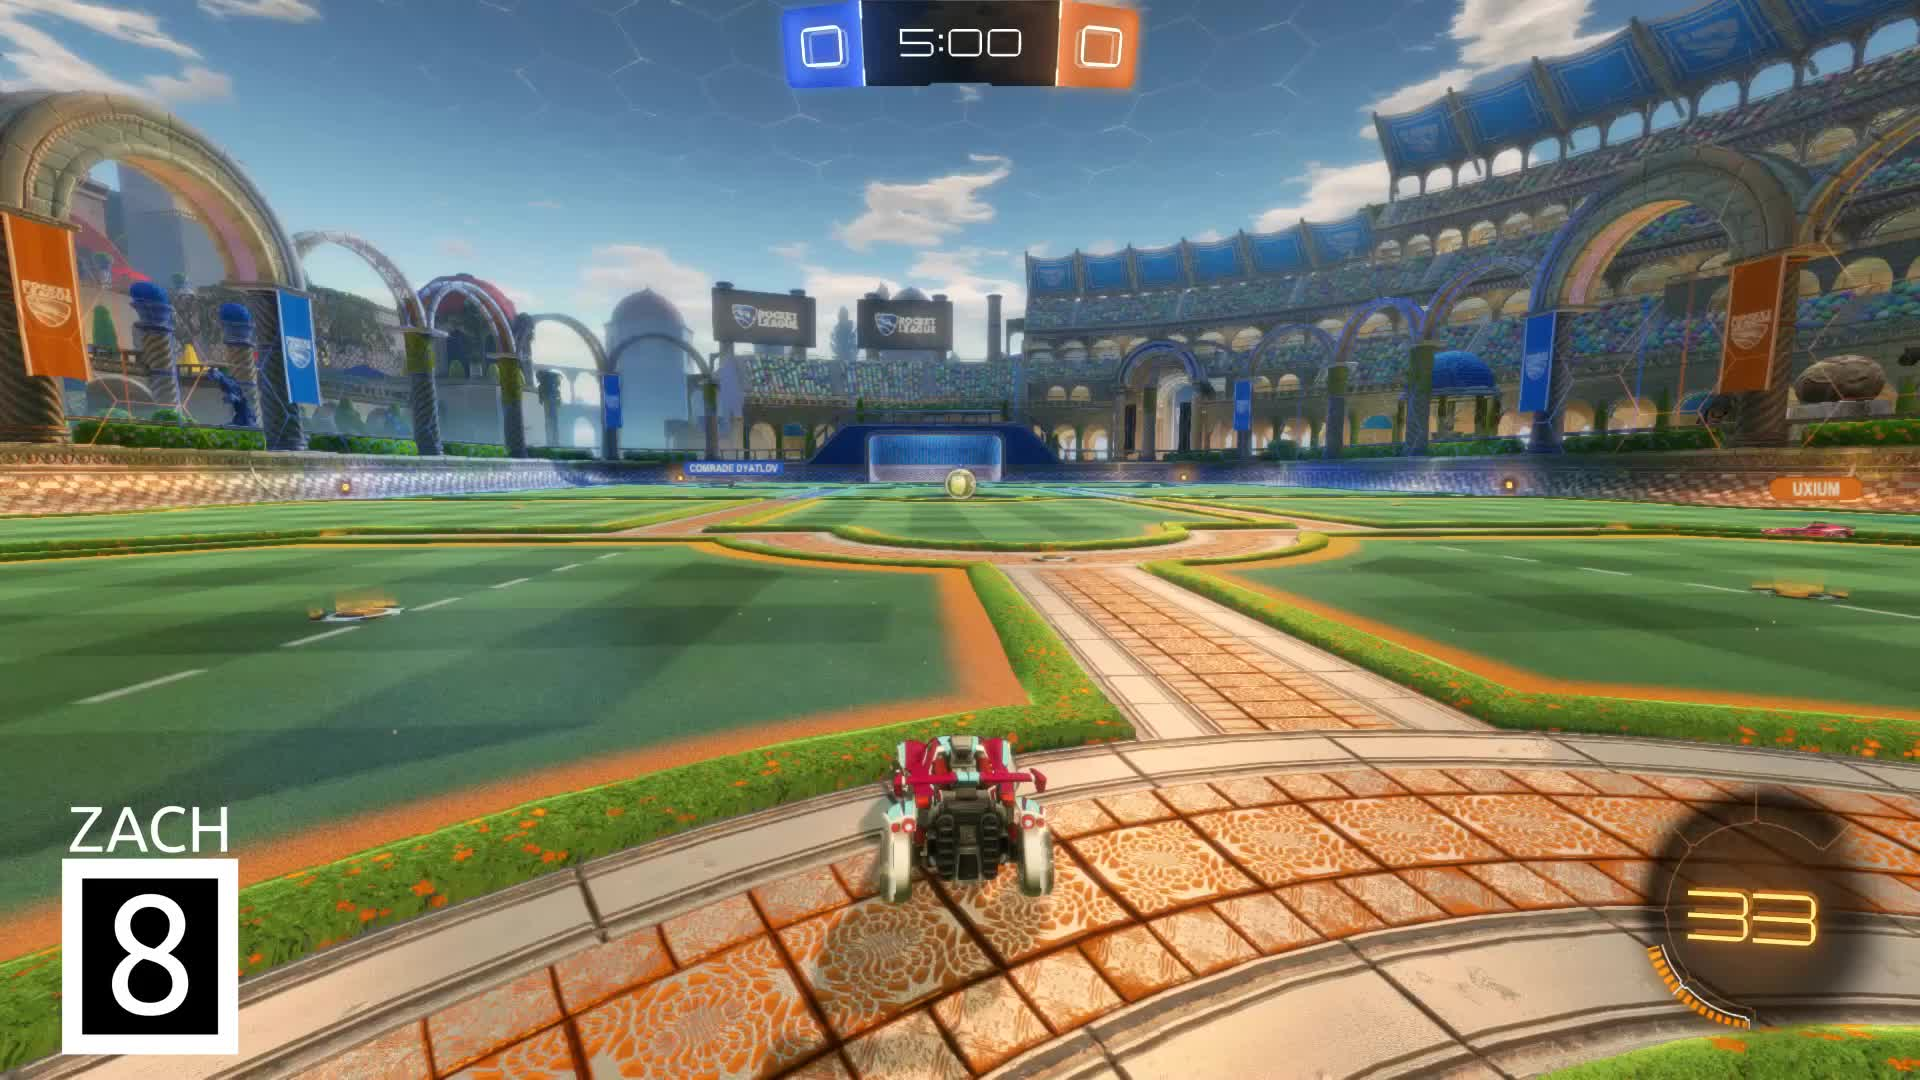 Gif Your Game, GifYourGame, Goal, Rocket League, RocketLeague, Zach, Goal 1: Zach GIFs